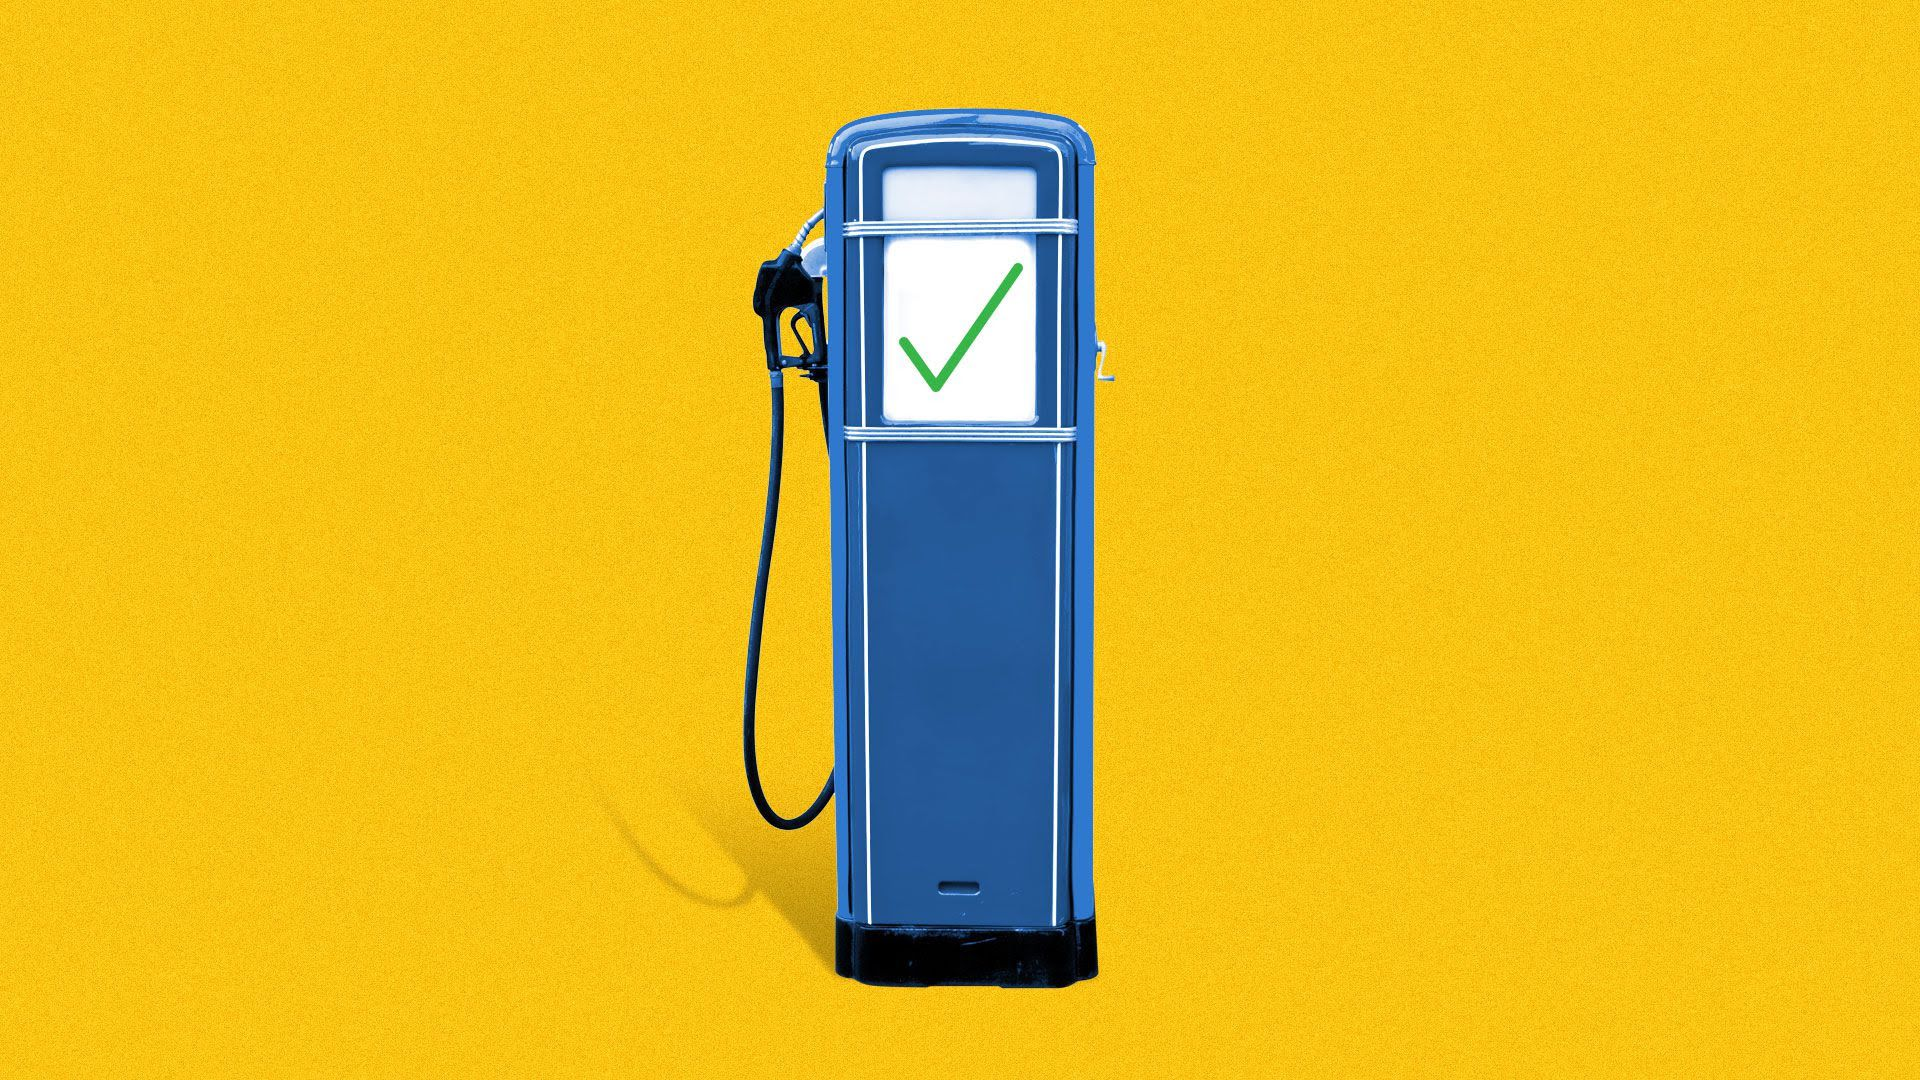 Illustration of a gas pump with a green check mark on it